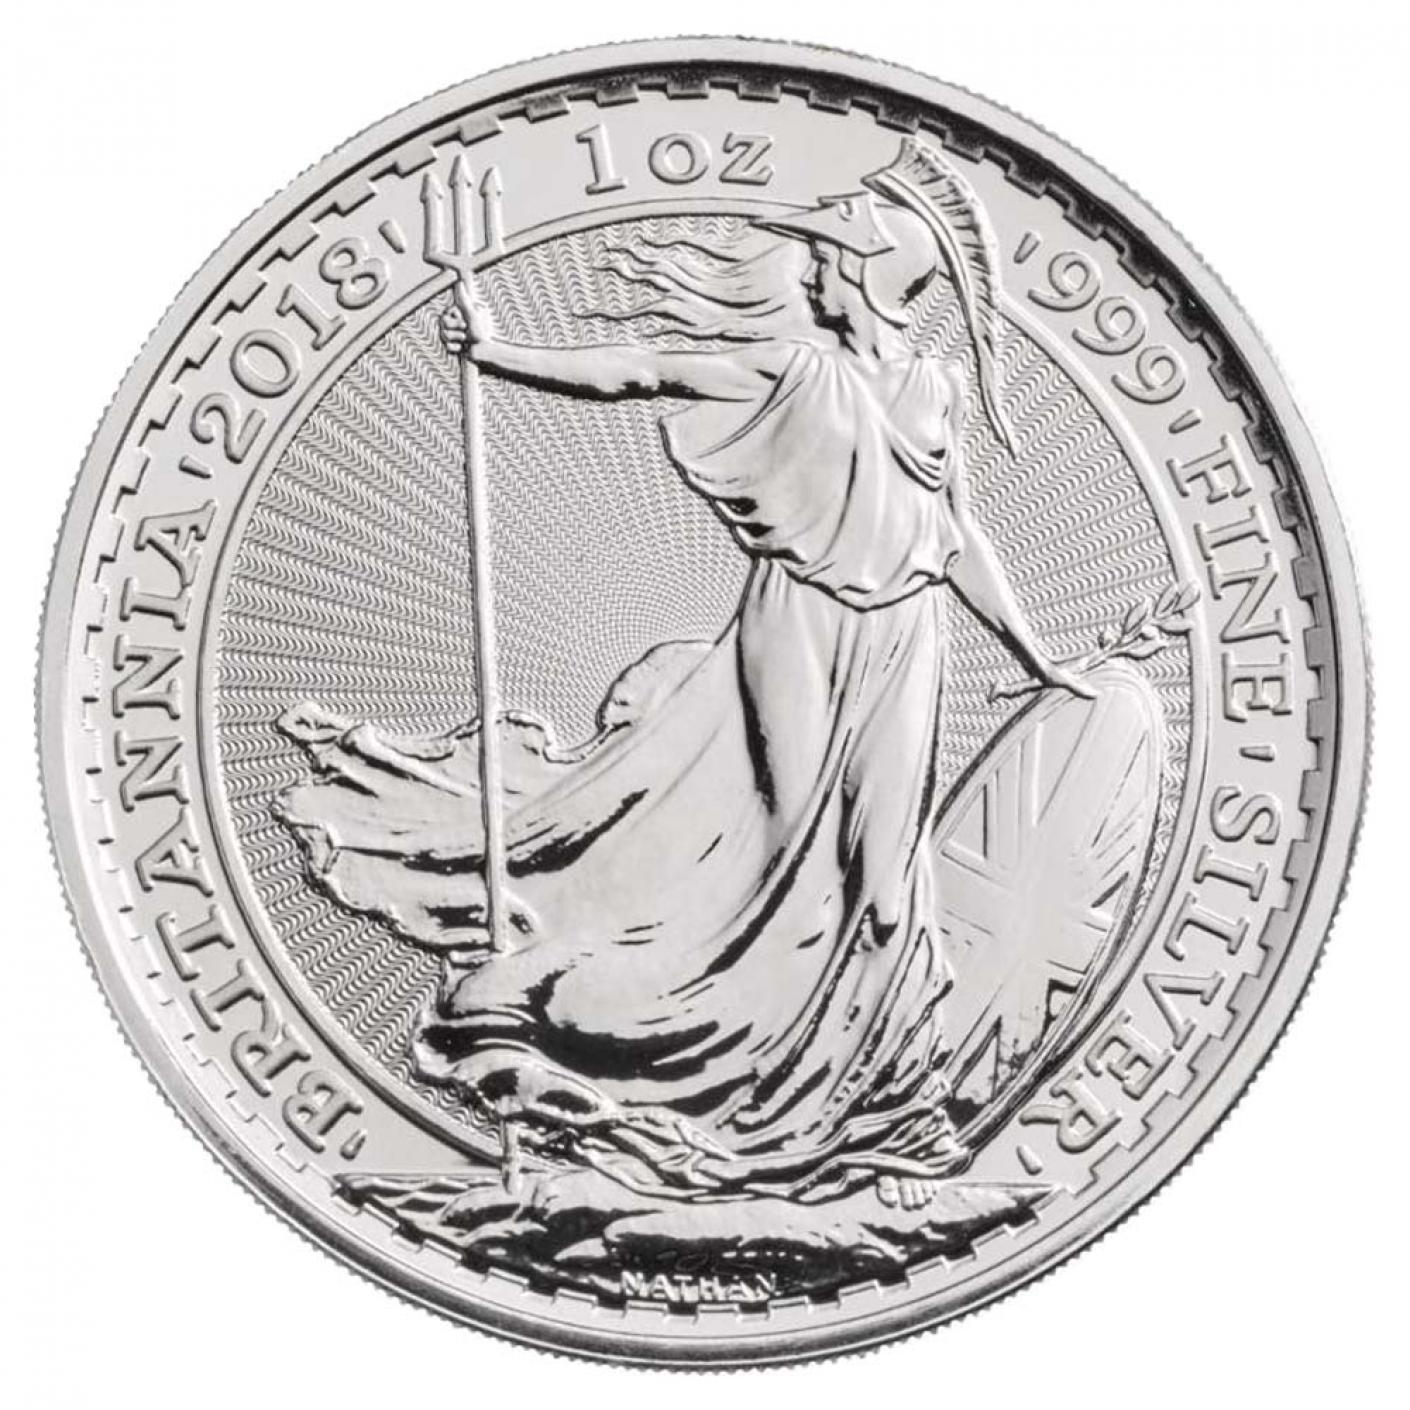 Royal Mint Silver Britannia Coins